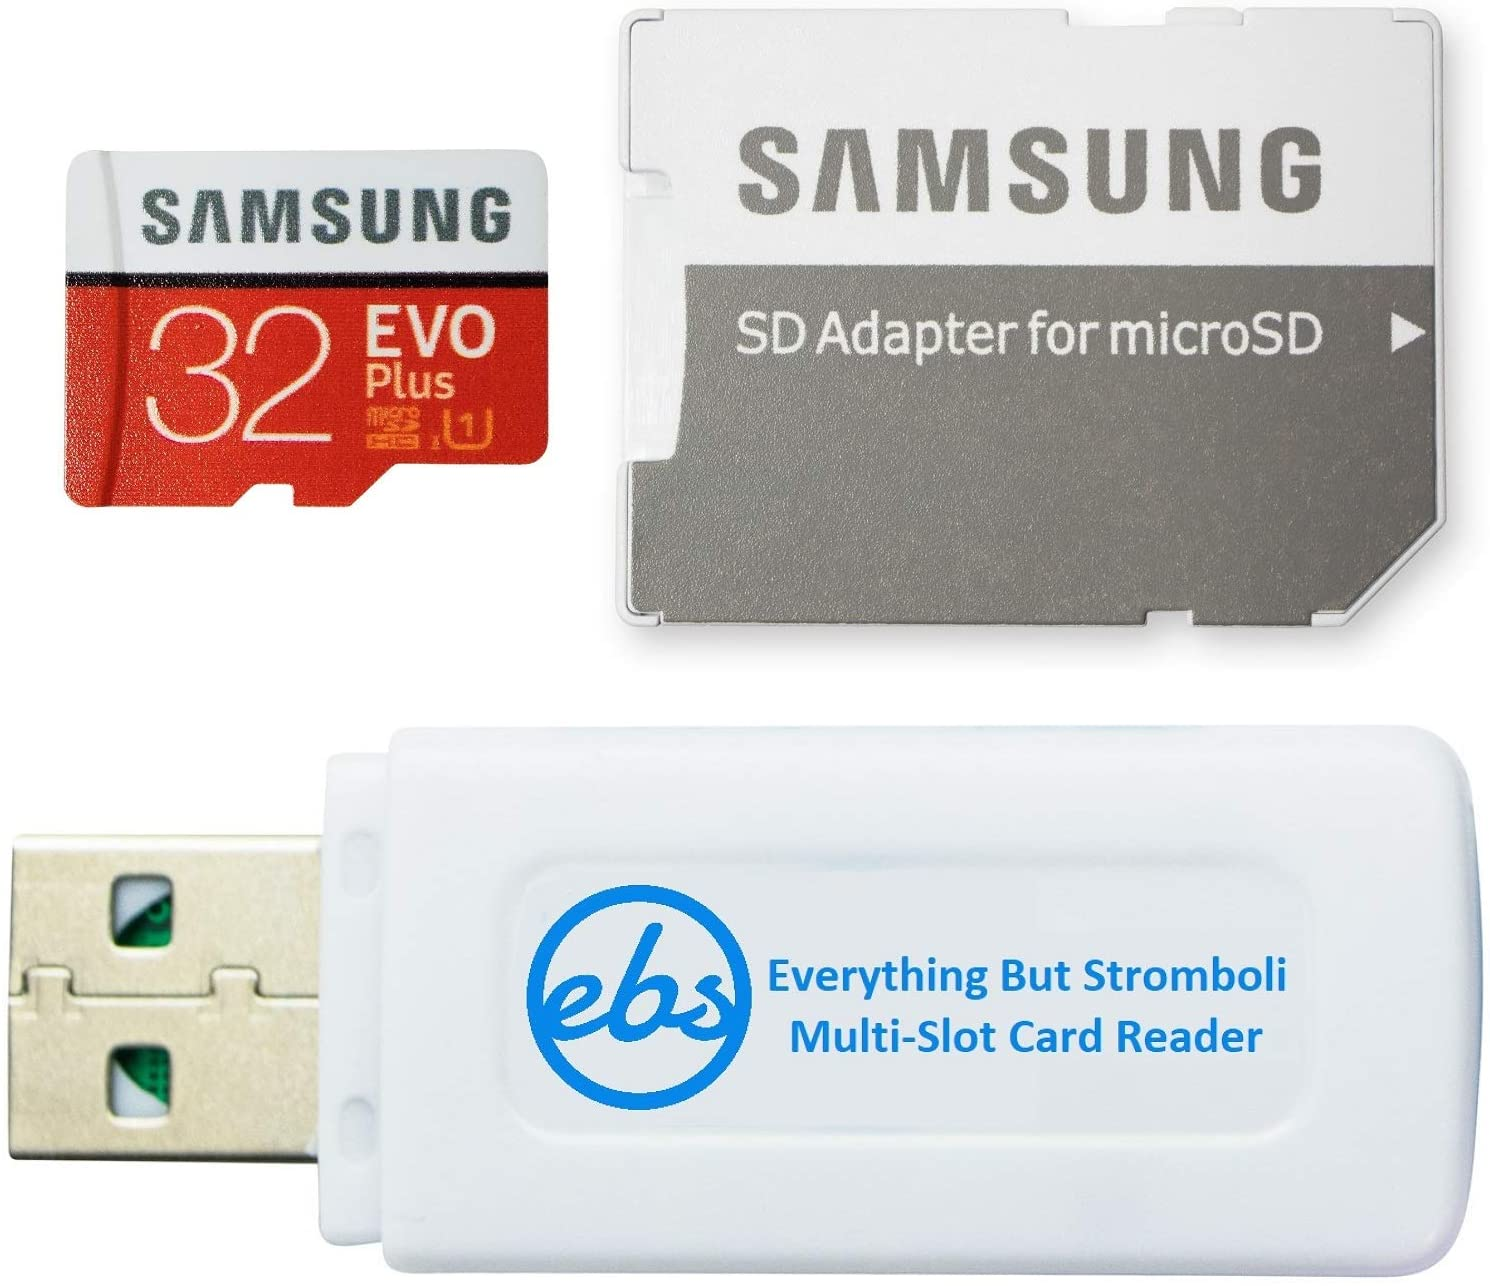 Samsung EVO+ 32GB Micro SD Memory Card for Samsung Tablet Works with Galaxy Tab A7 FE, Tab S7 Lite, S7 FE 5G Tablet (MB-MC32) Bundle with (1) Everything But Stromboli SD & MicroSDHC Memory Card Reader